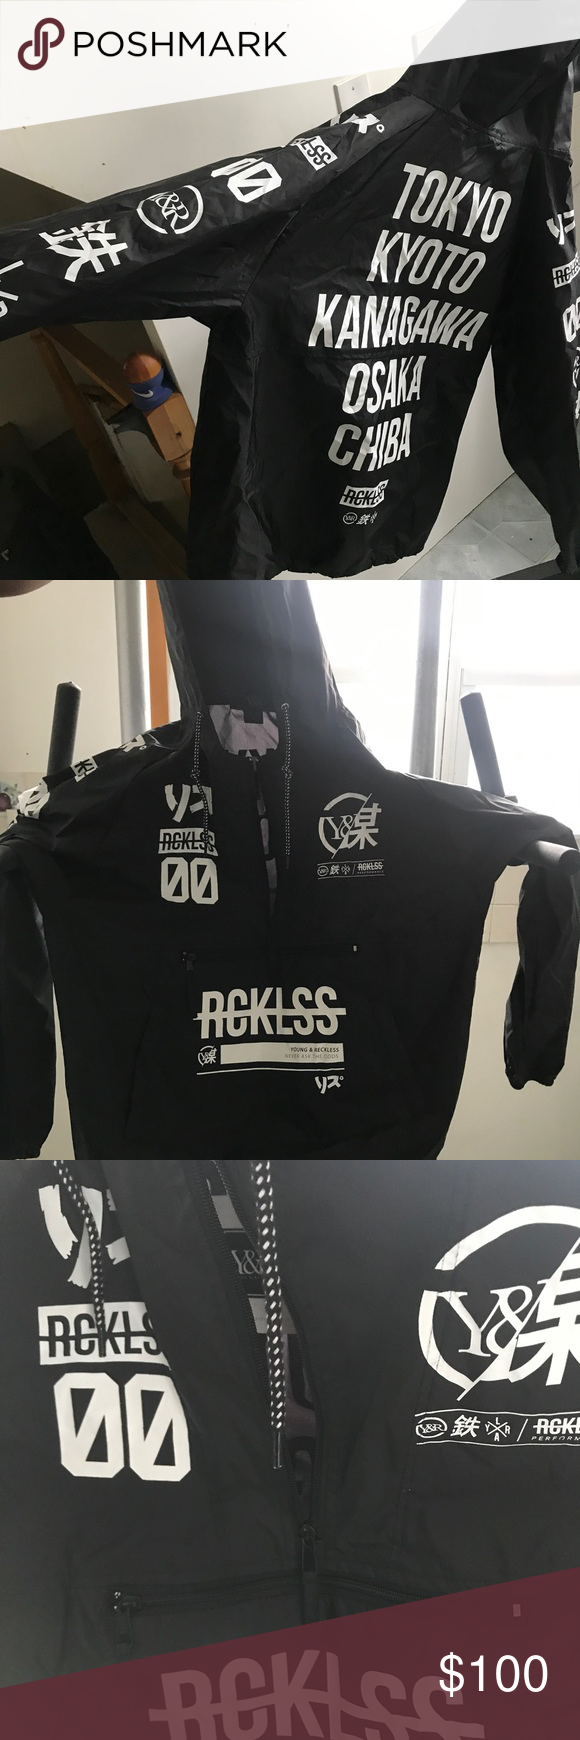 Young & Reckless Limited Edition Jacket | Jackets, Fashion